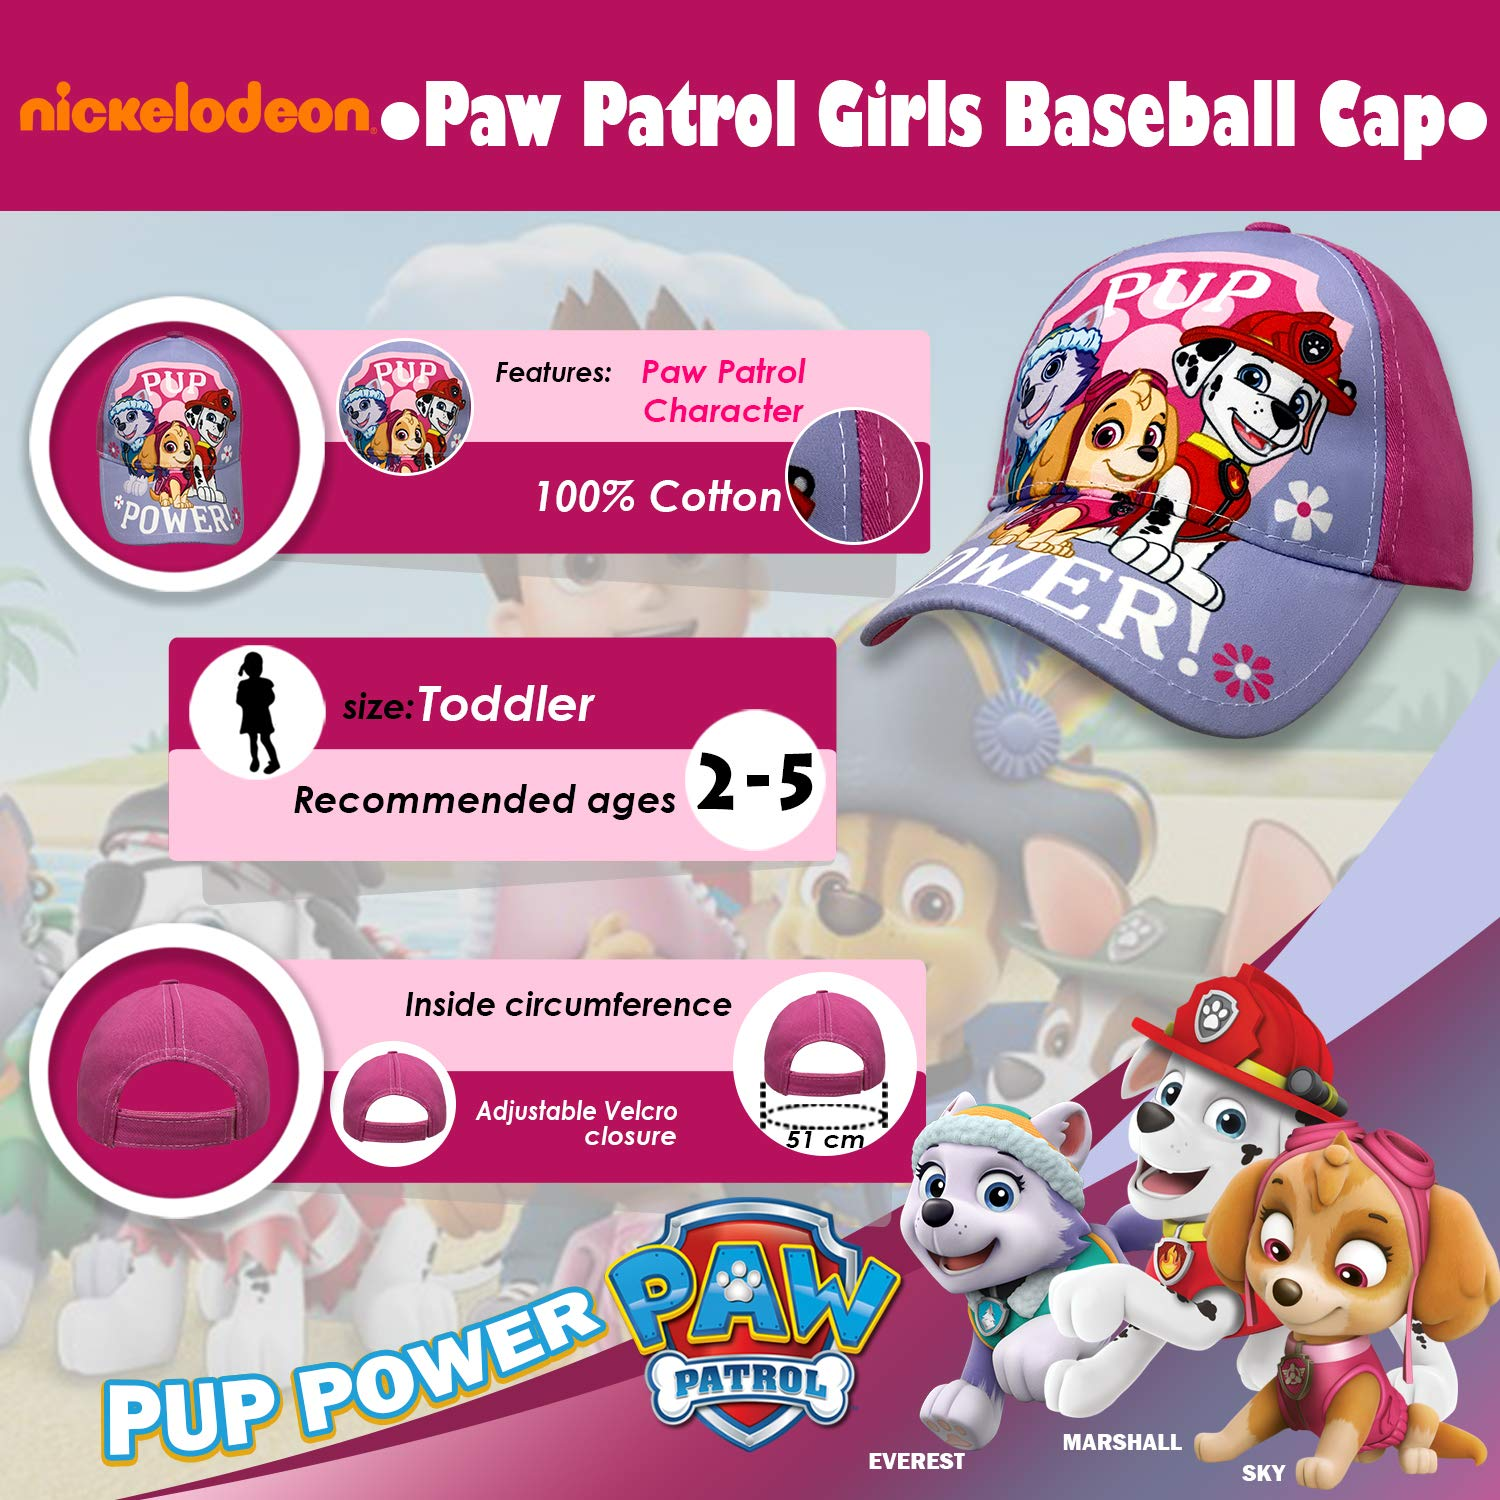 cc79d82056d Amazon.com  Nickelodeon Paw Patrol Little Girls Baseball Cap Age 2-5 Pink   Clothing